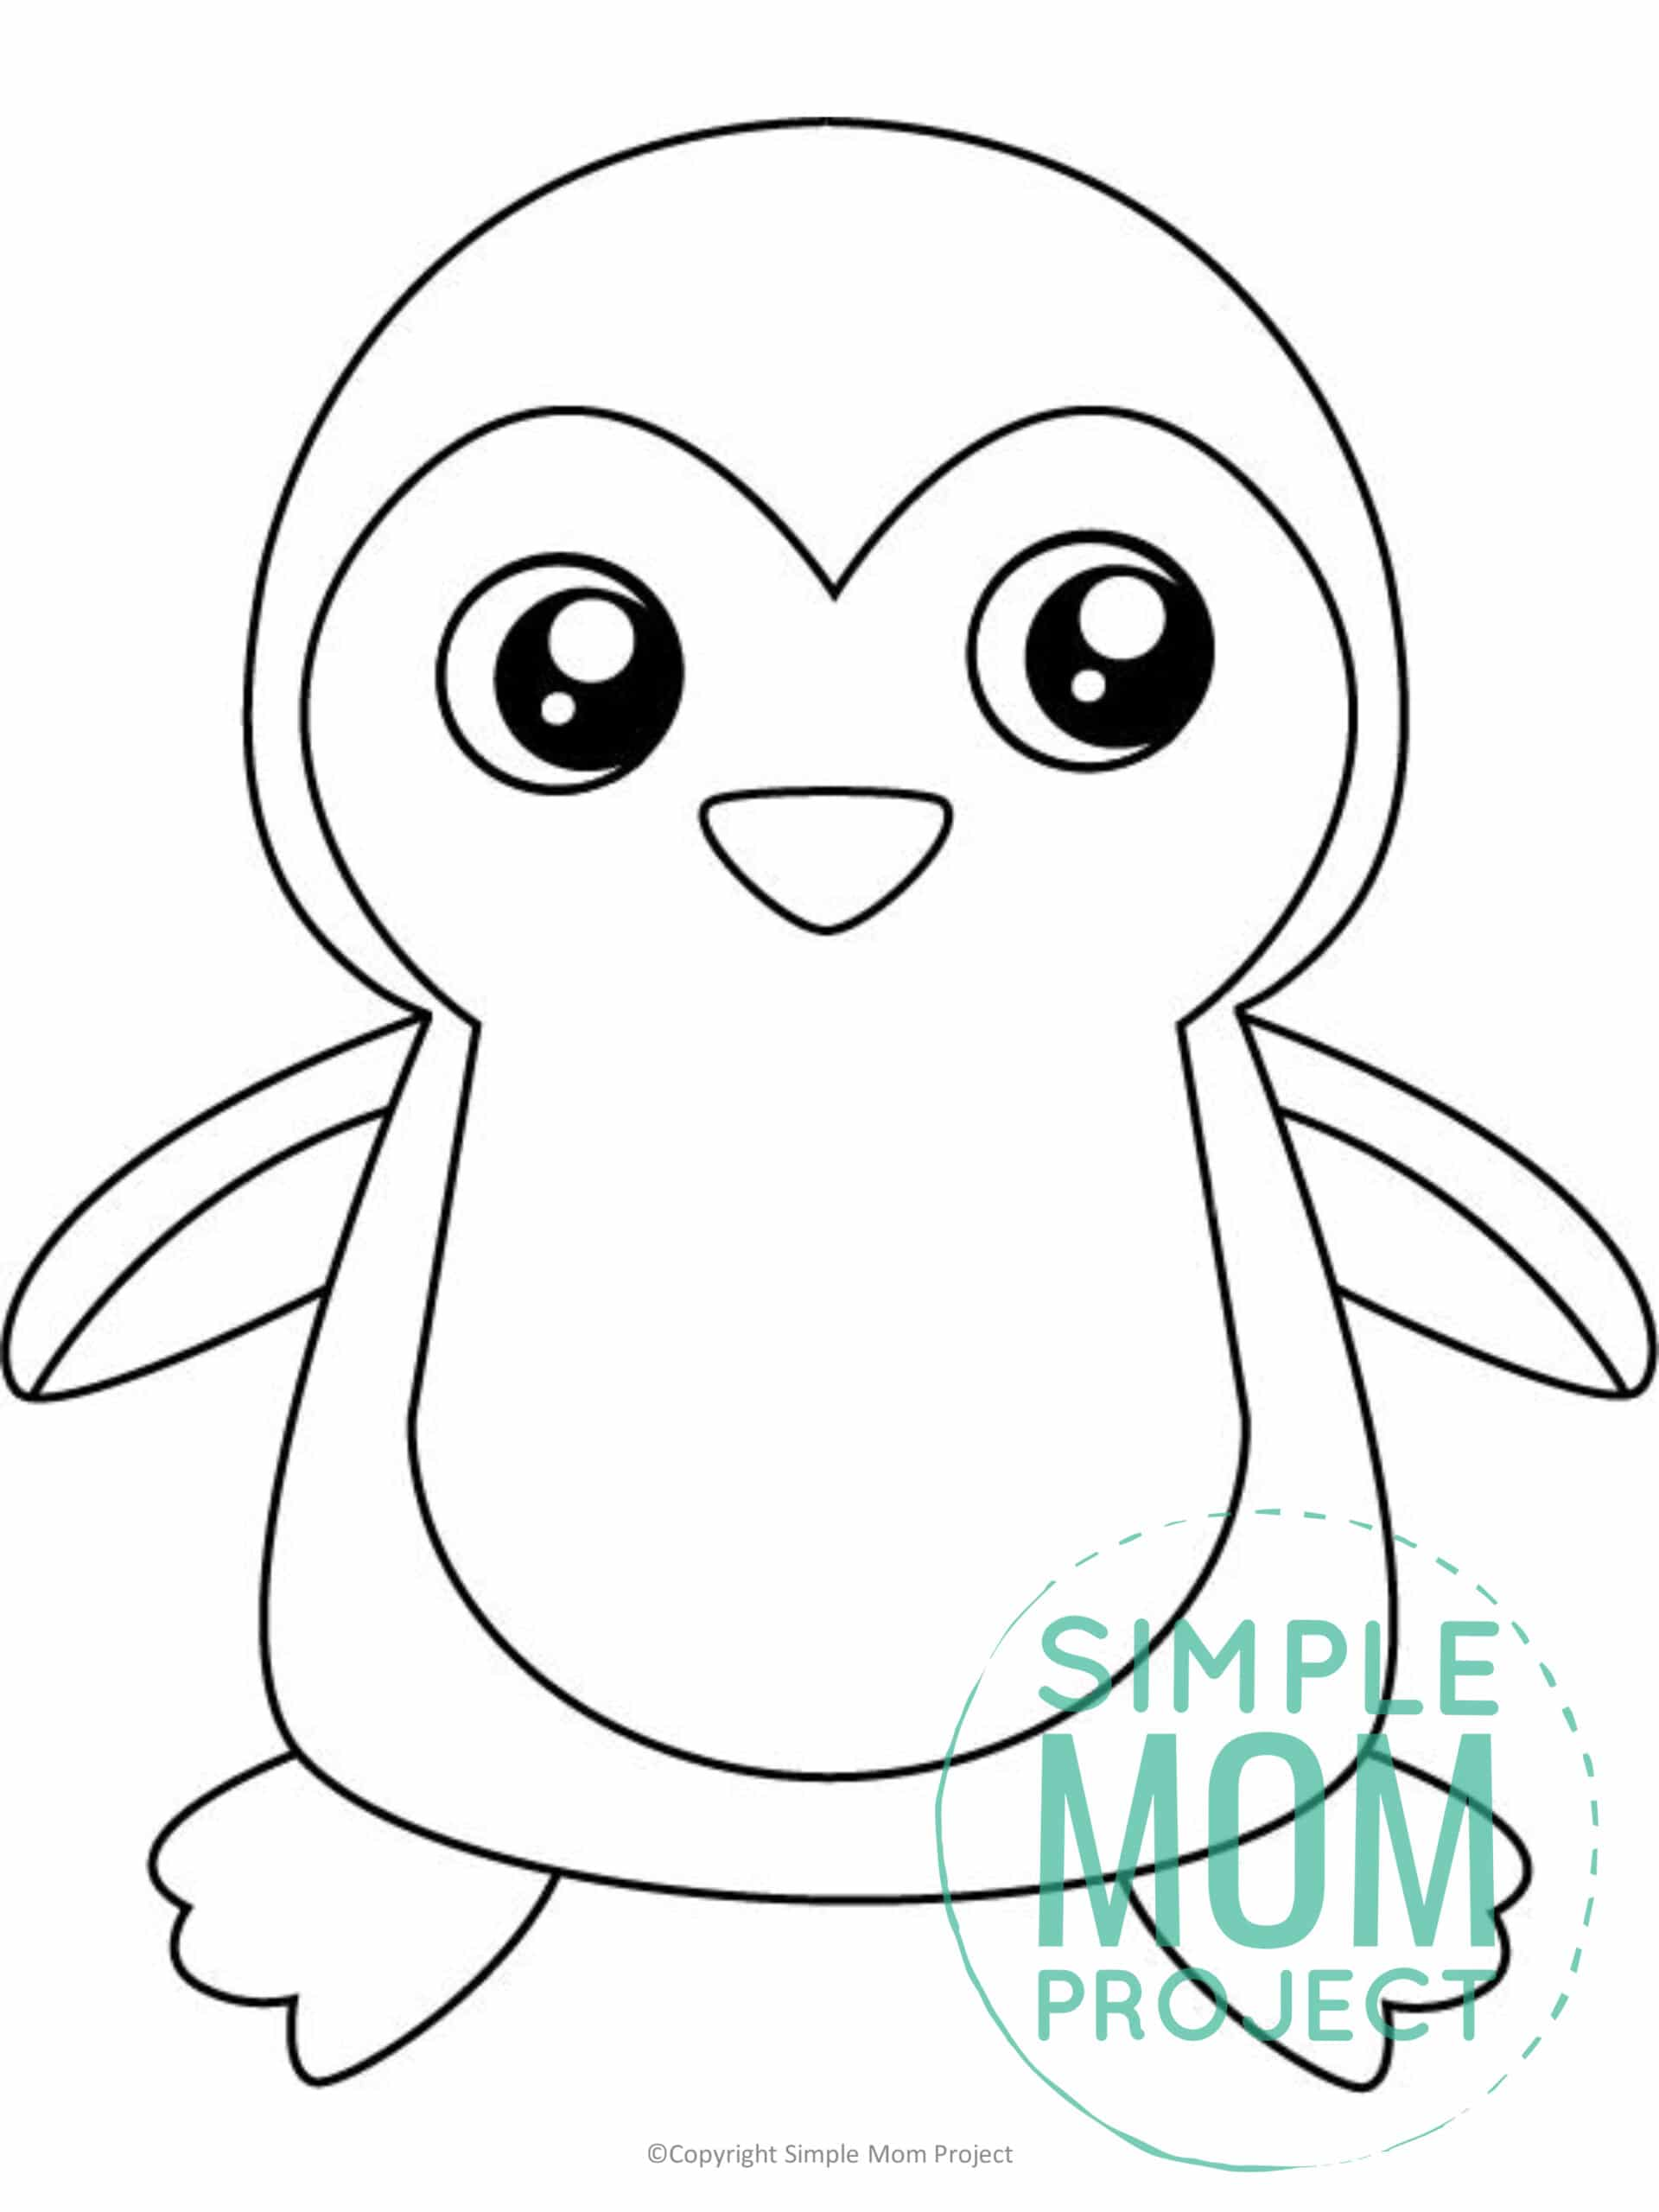 Printable Penguin Template coloring page for preschoolers, toddlers and kindergartners 1